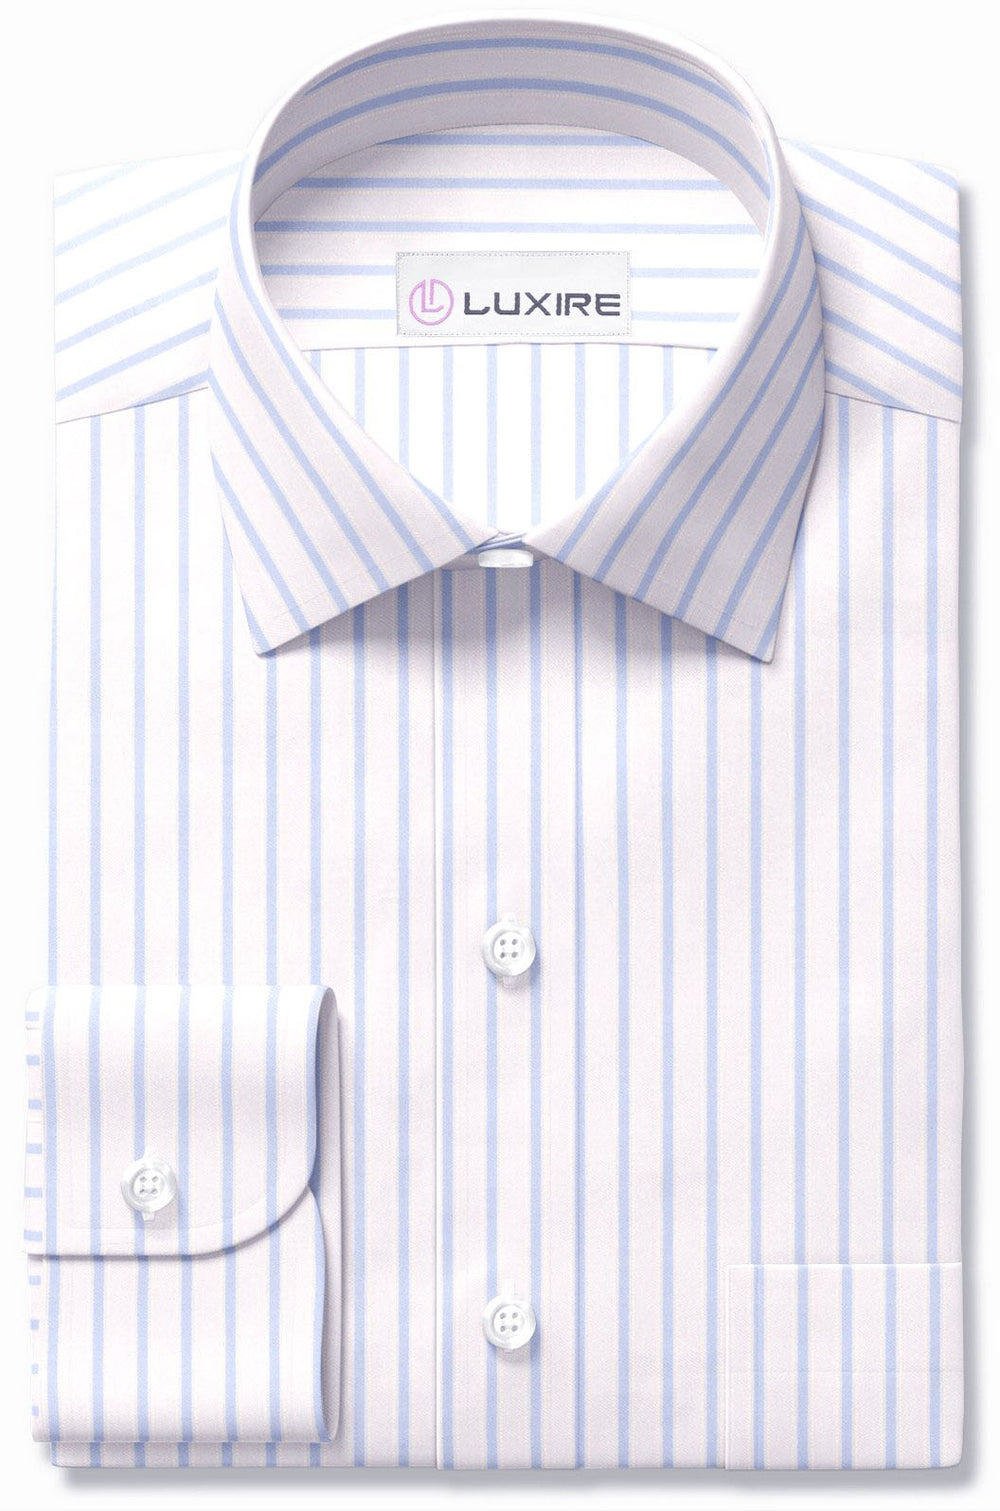 Luxire Gold - White with Blue Stripes (95744982)